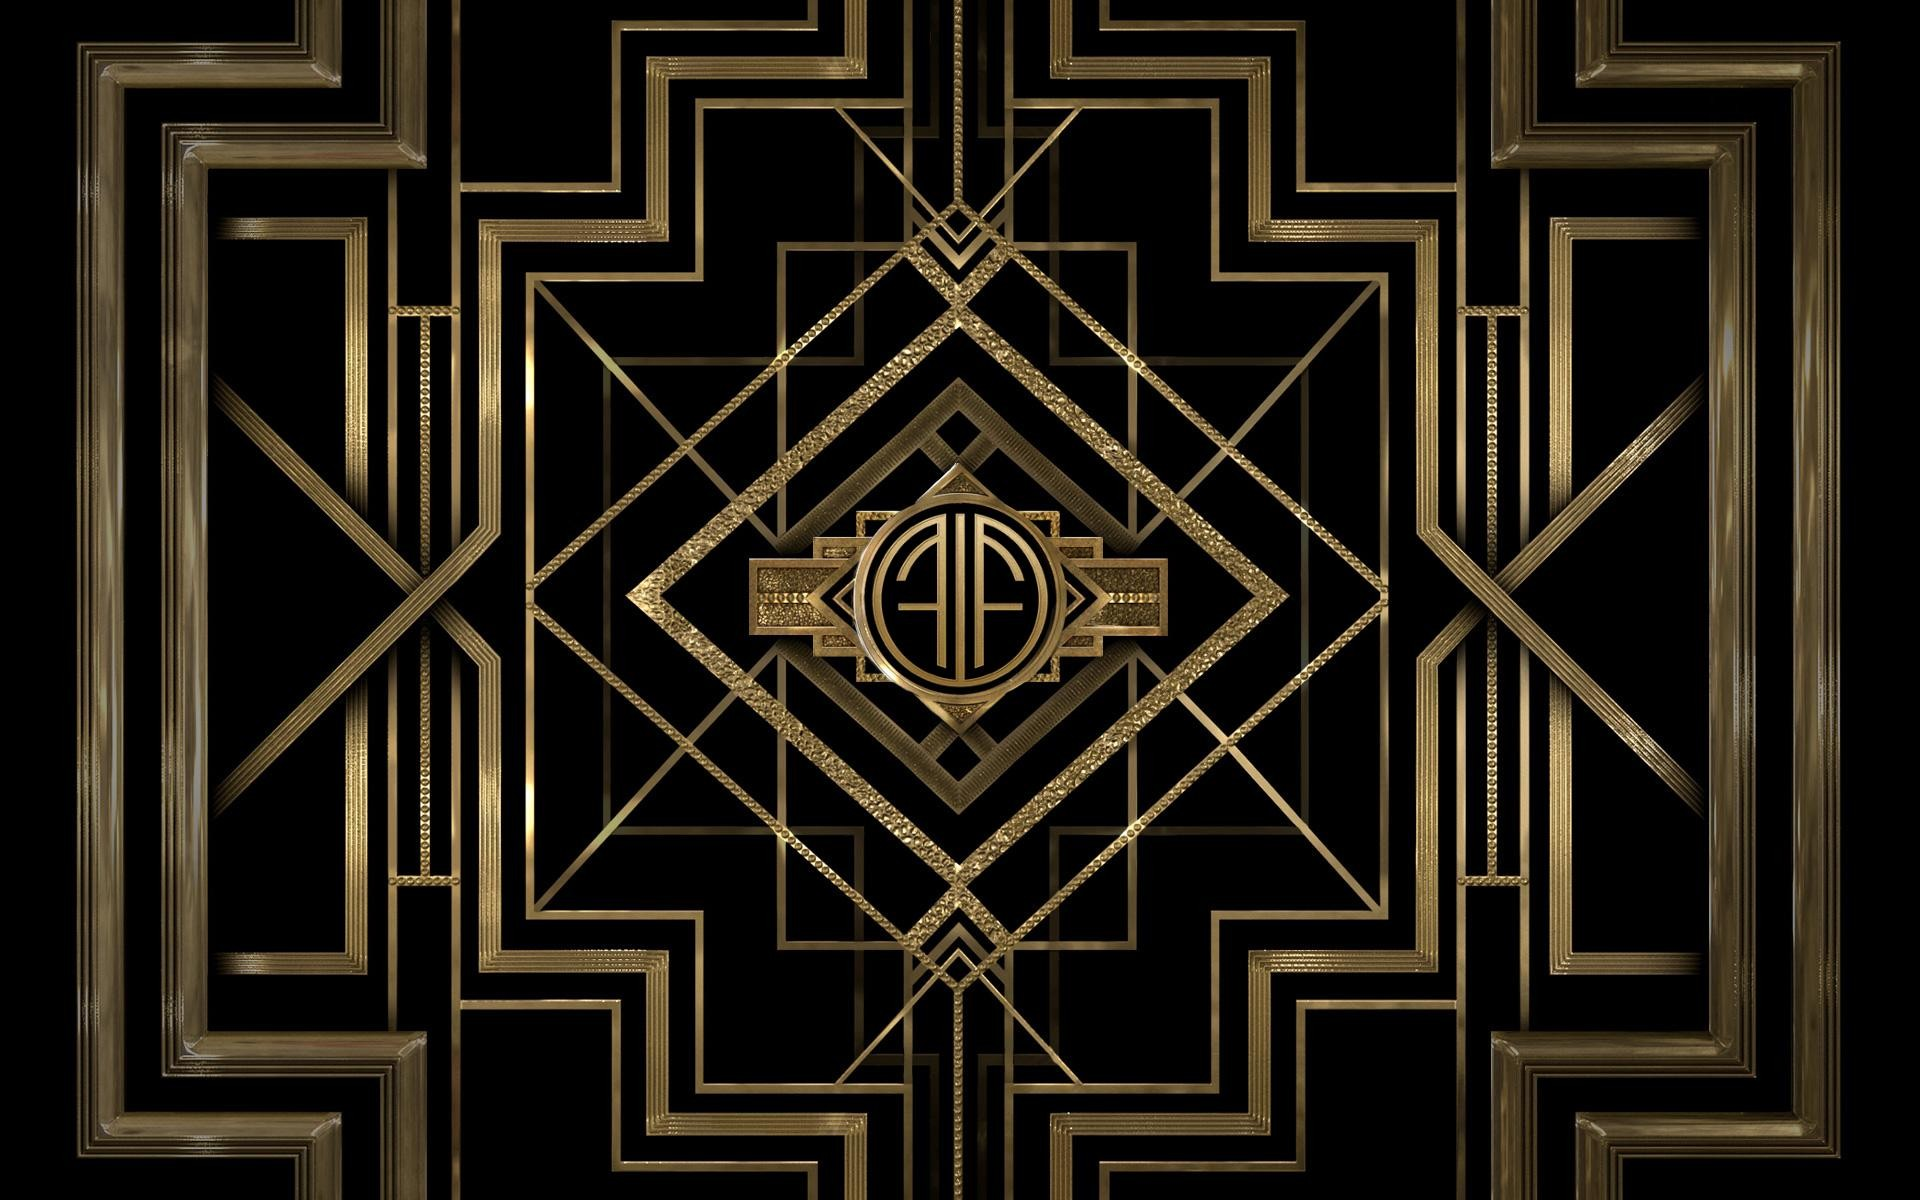 Art deco wallpaper 6583 1920x1200 px for Design art deco